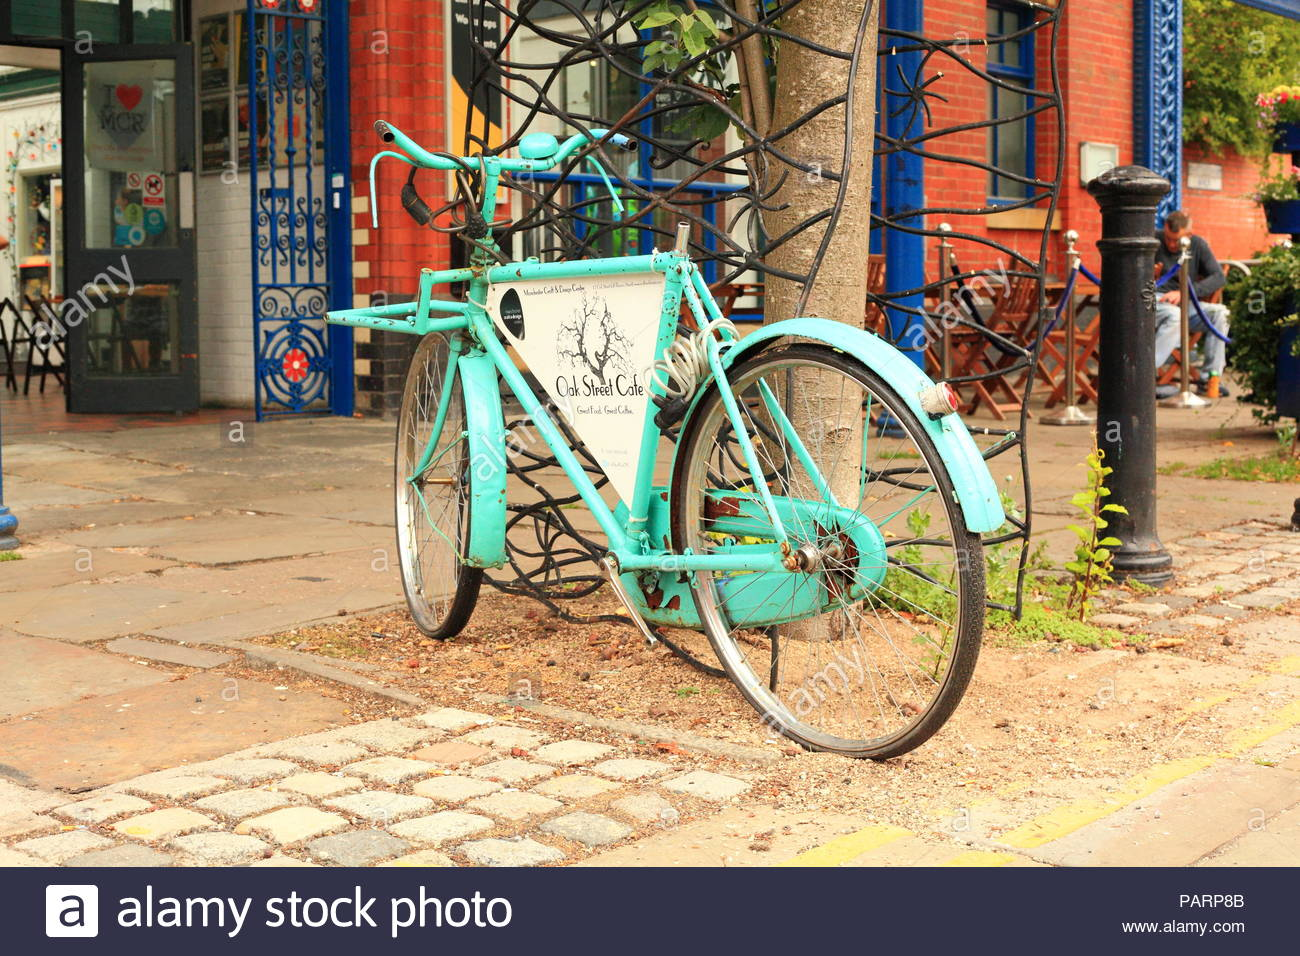 A quirky bicycle advertising the Oak Street Cafe at The Manchester Craft & Design Centre on Old Street. Northern Quarter, Manchester UK - Stock Image